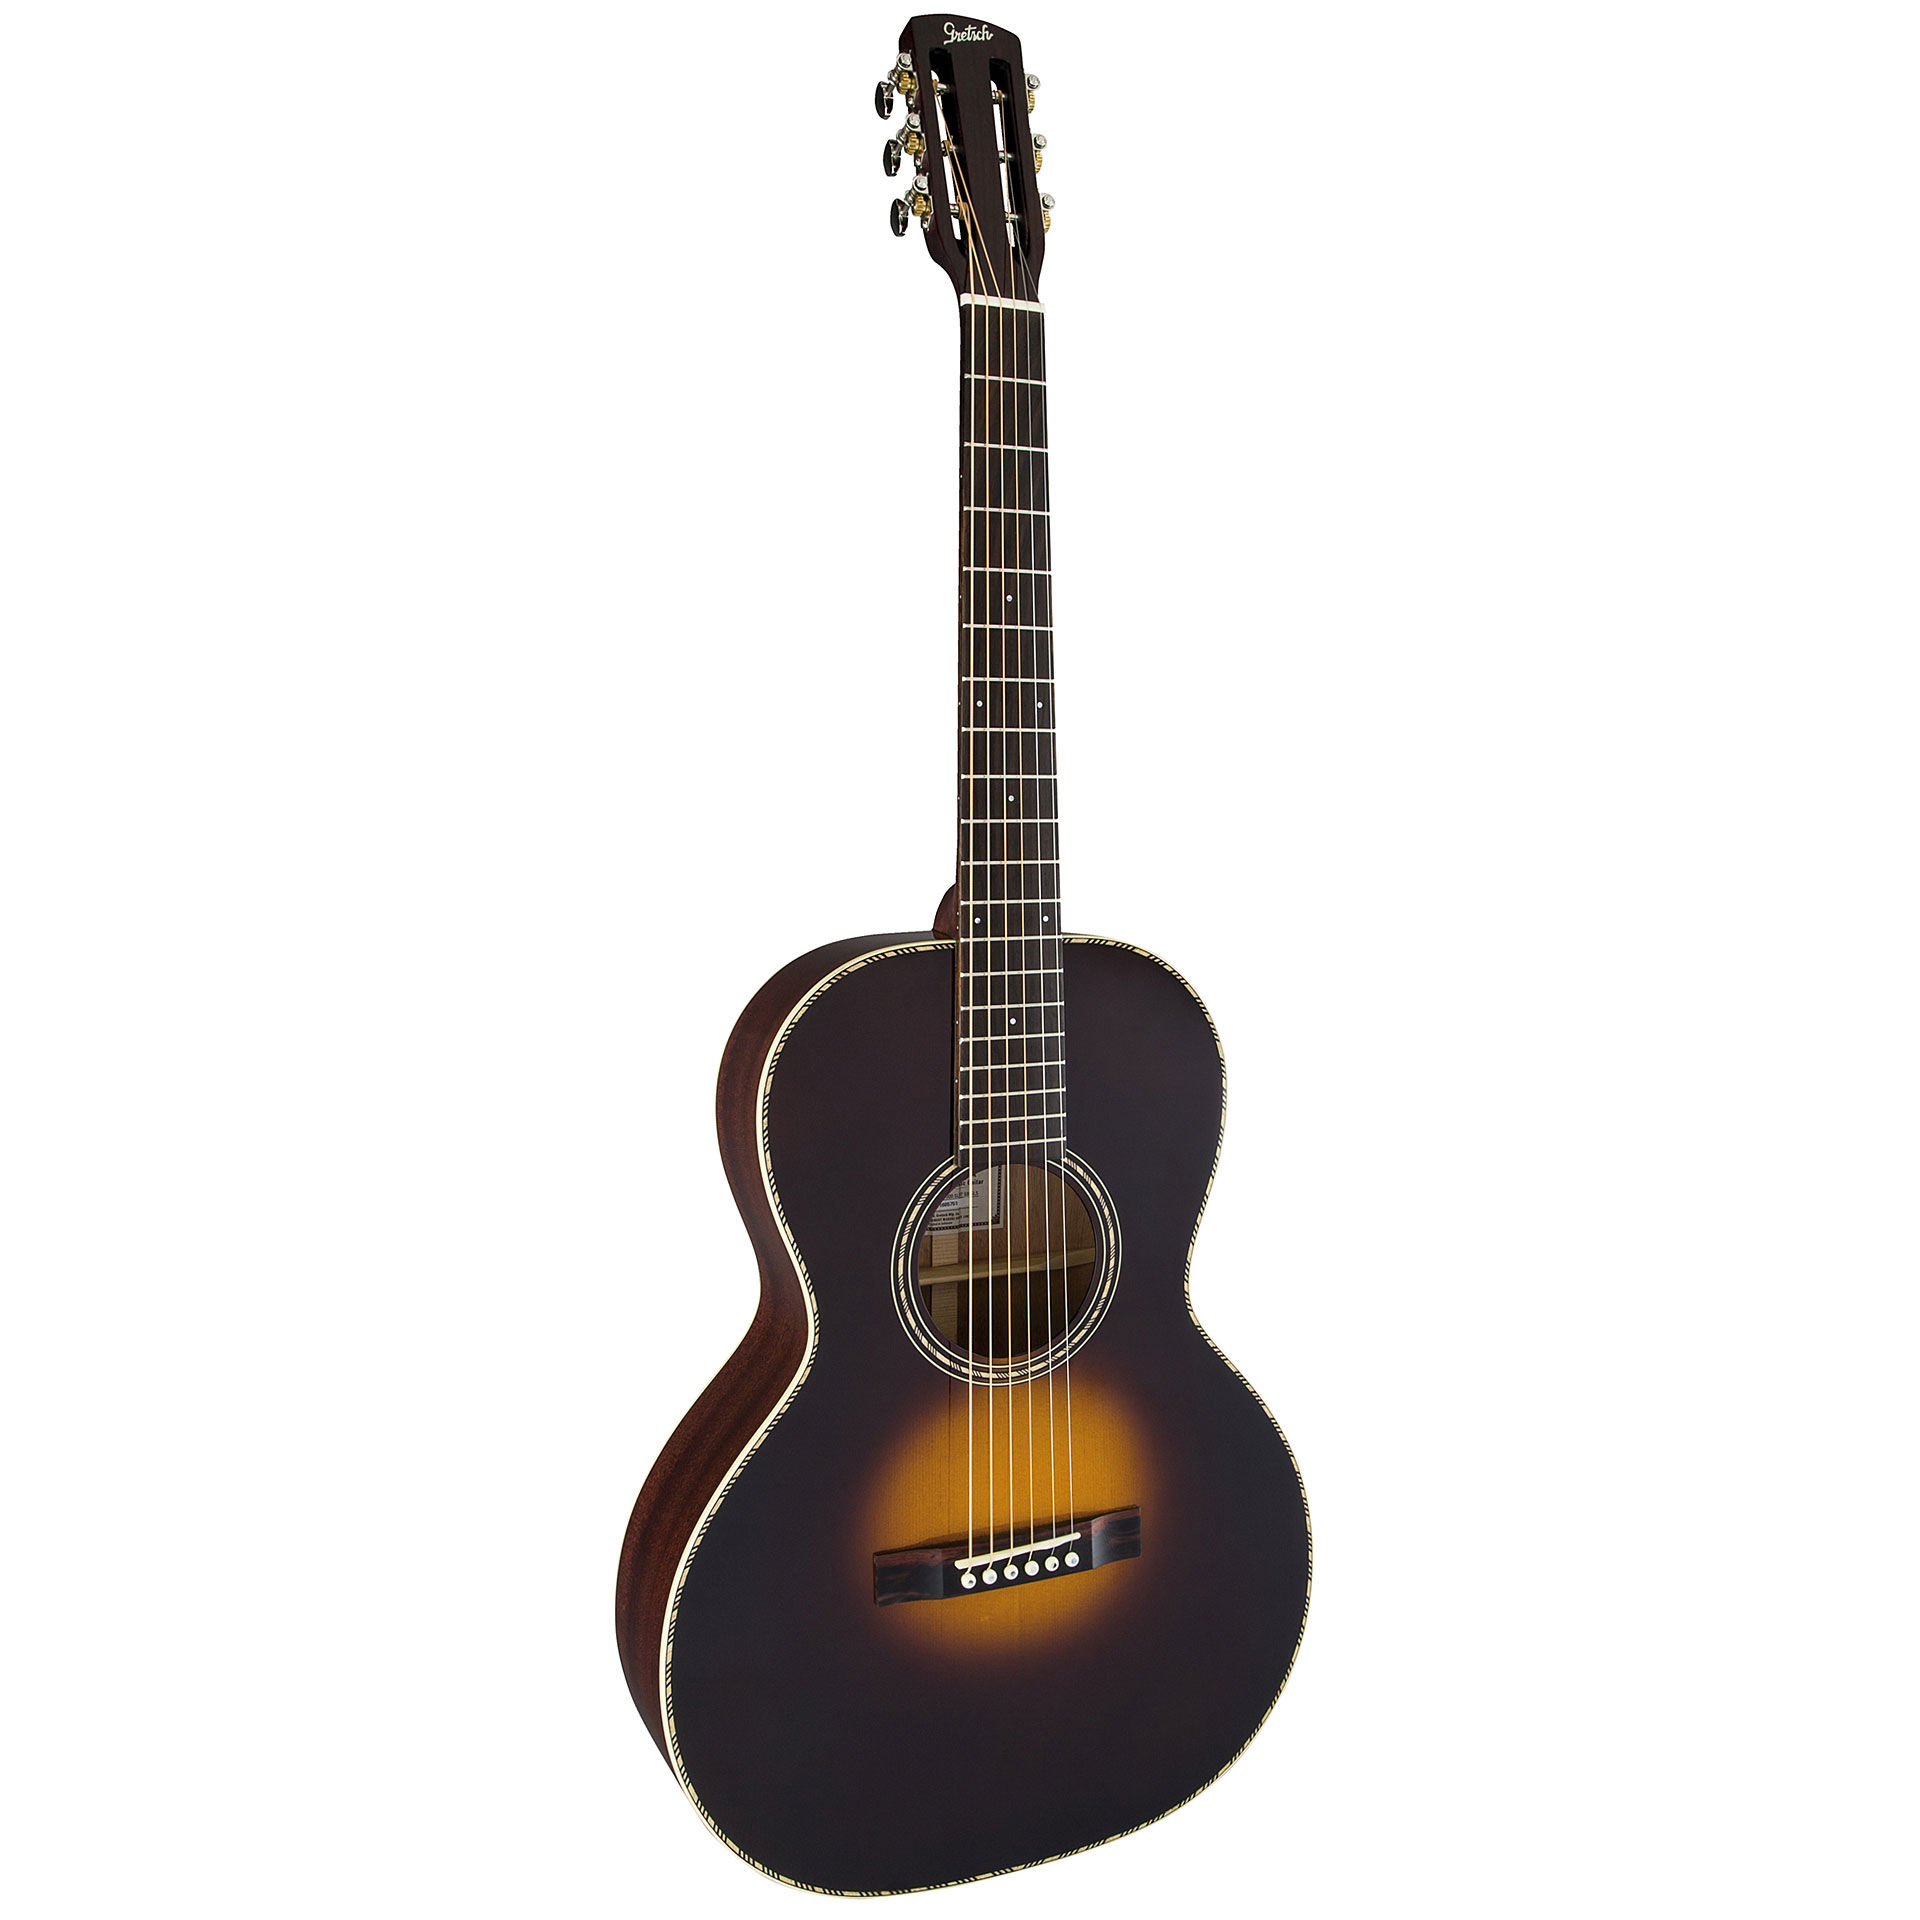 gretsch g9521 style 2 ooo acoustic guitar. Black Bedroom Furniture Sets. Home Design Ideas